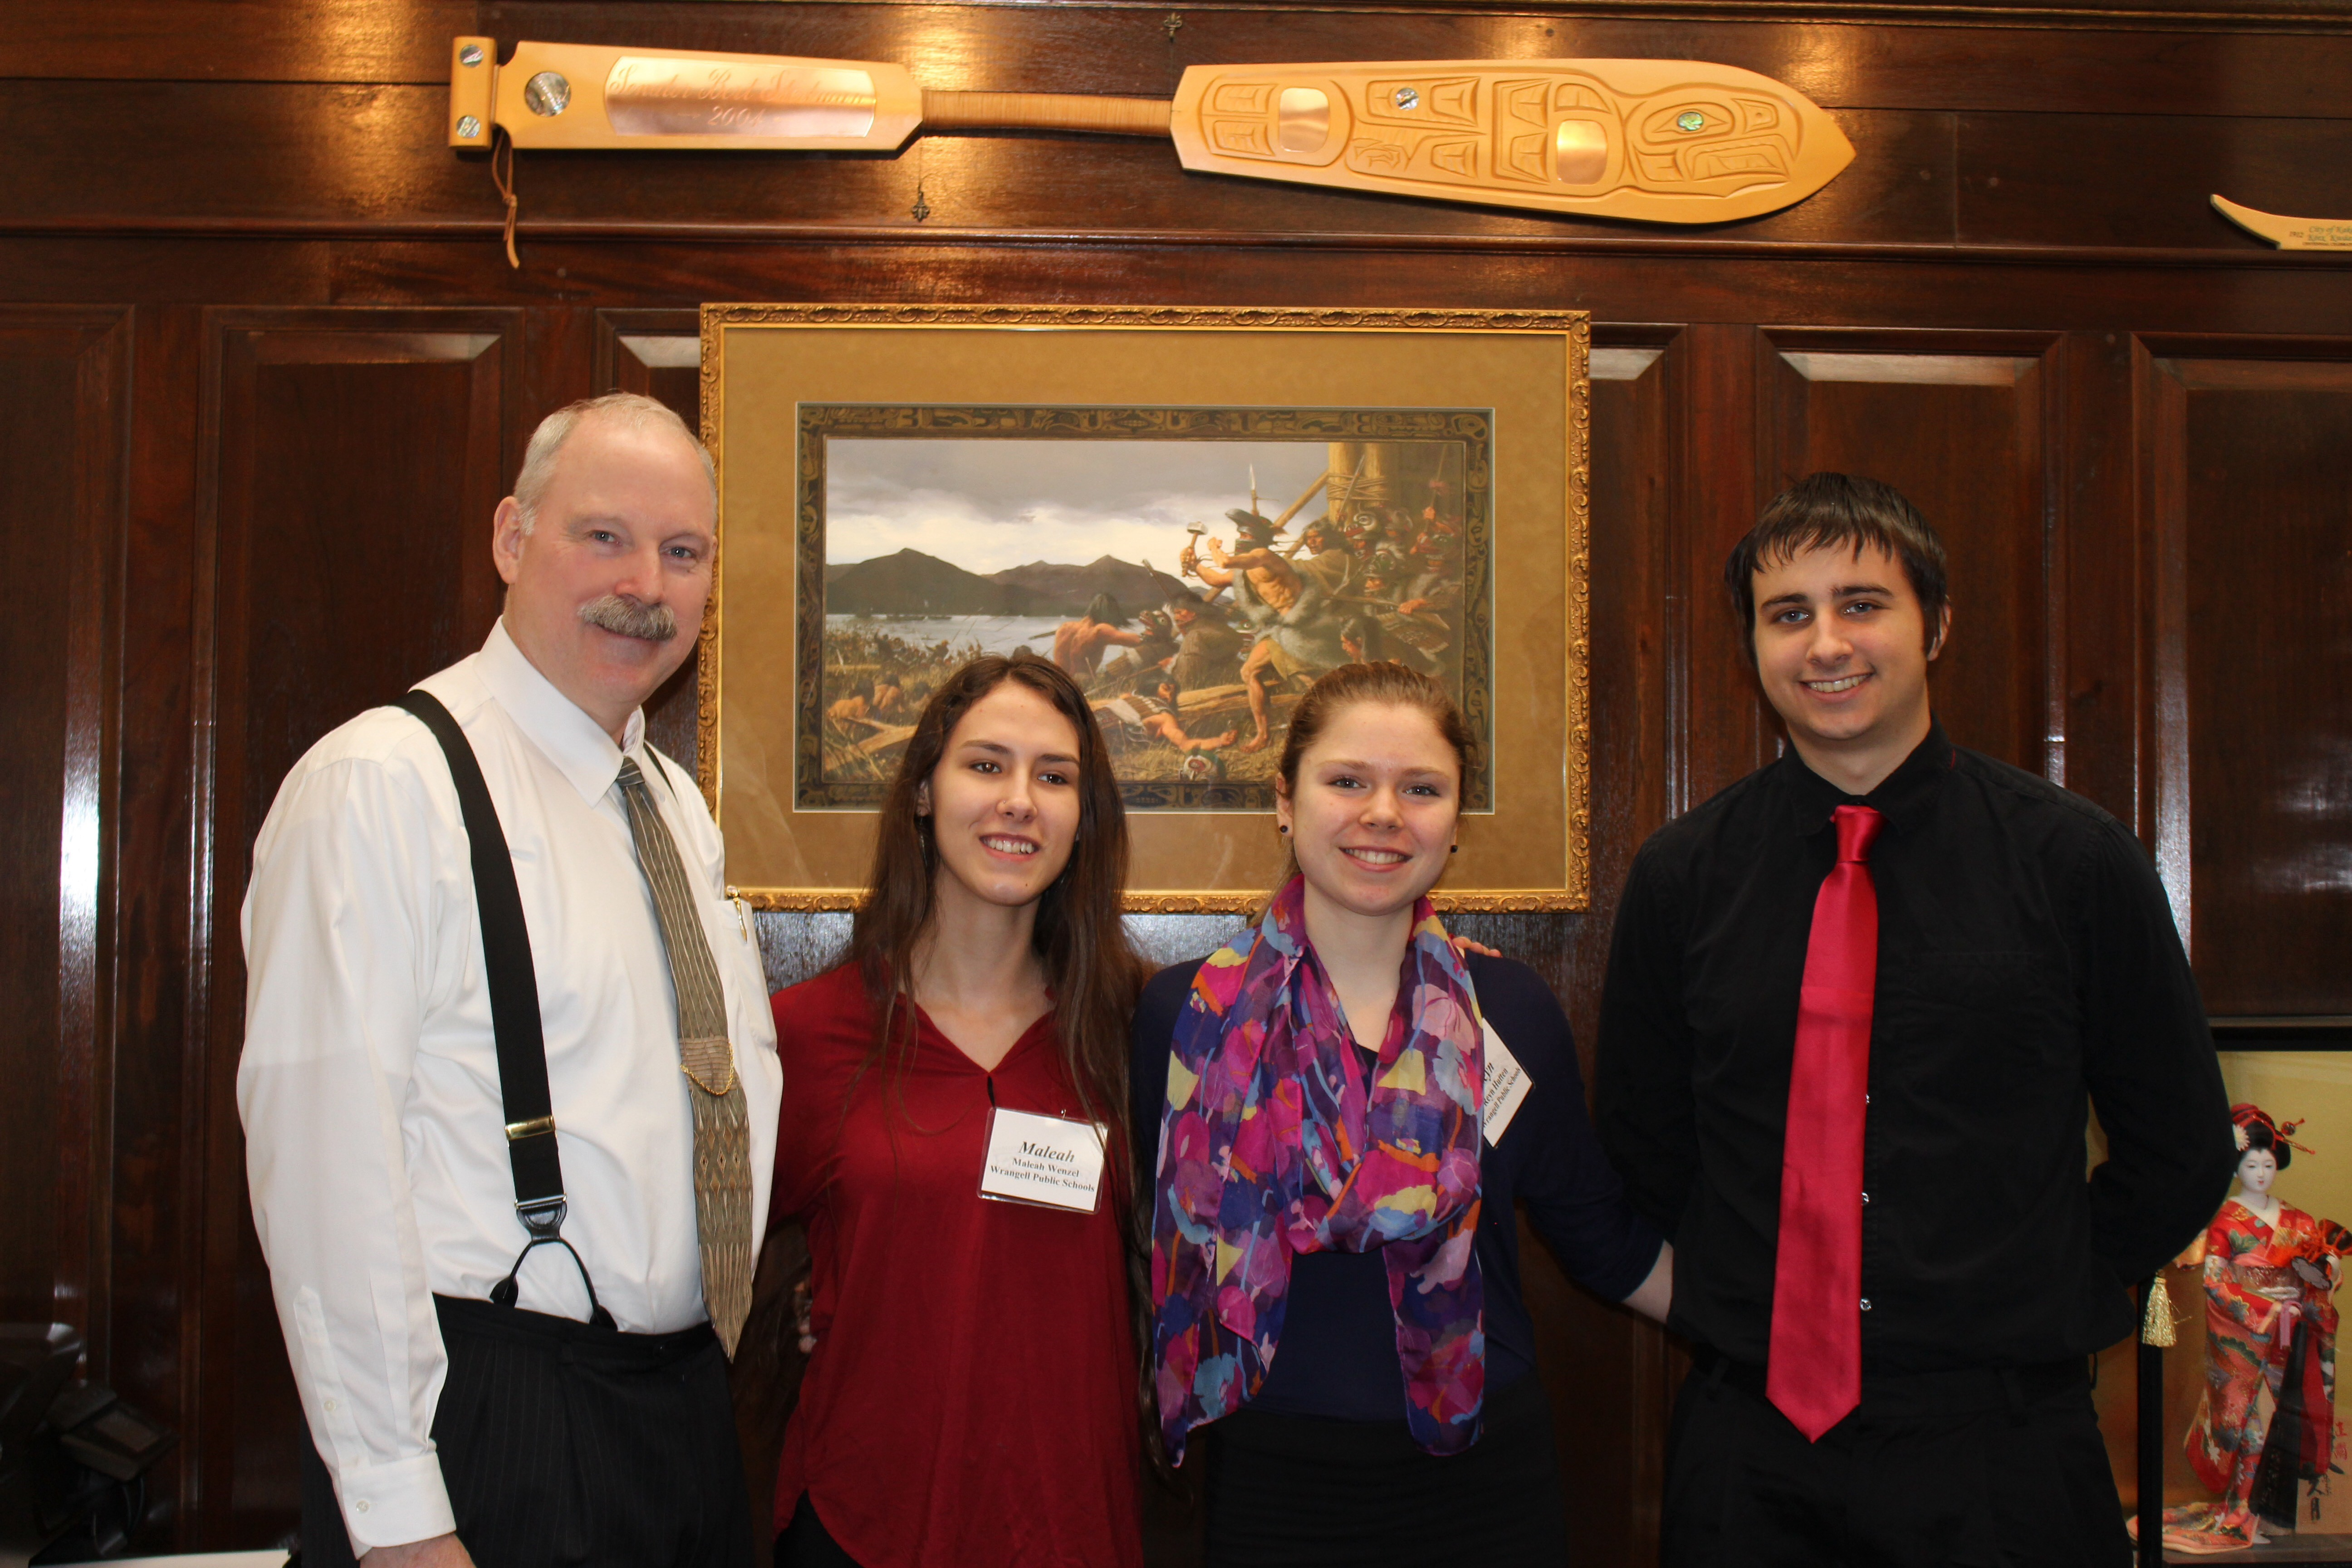 Senator Stedman pictured with students from the Wrangell School District: Maleah Menzel, Aleisha Mollen, & Davis Dow.